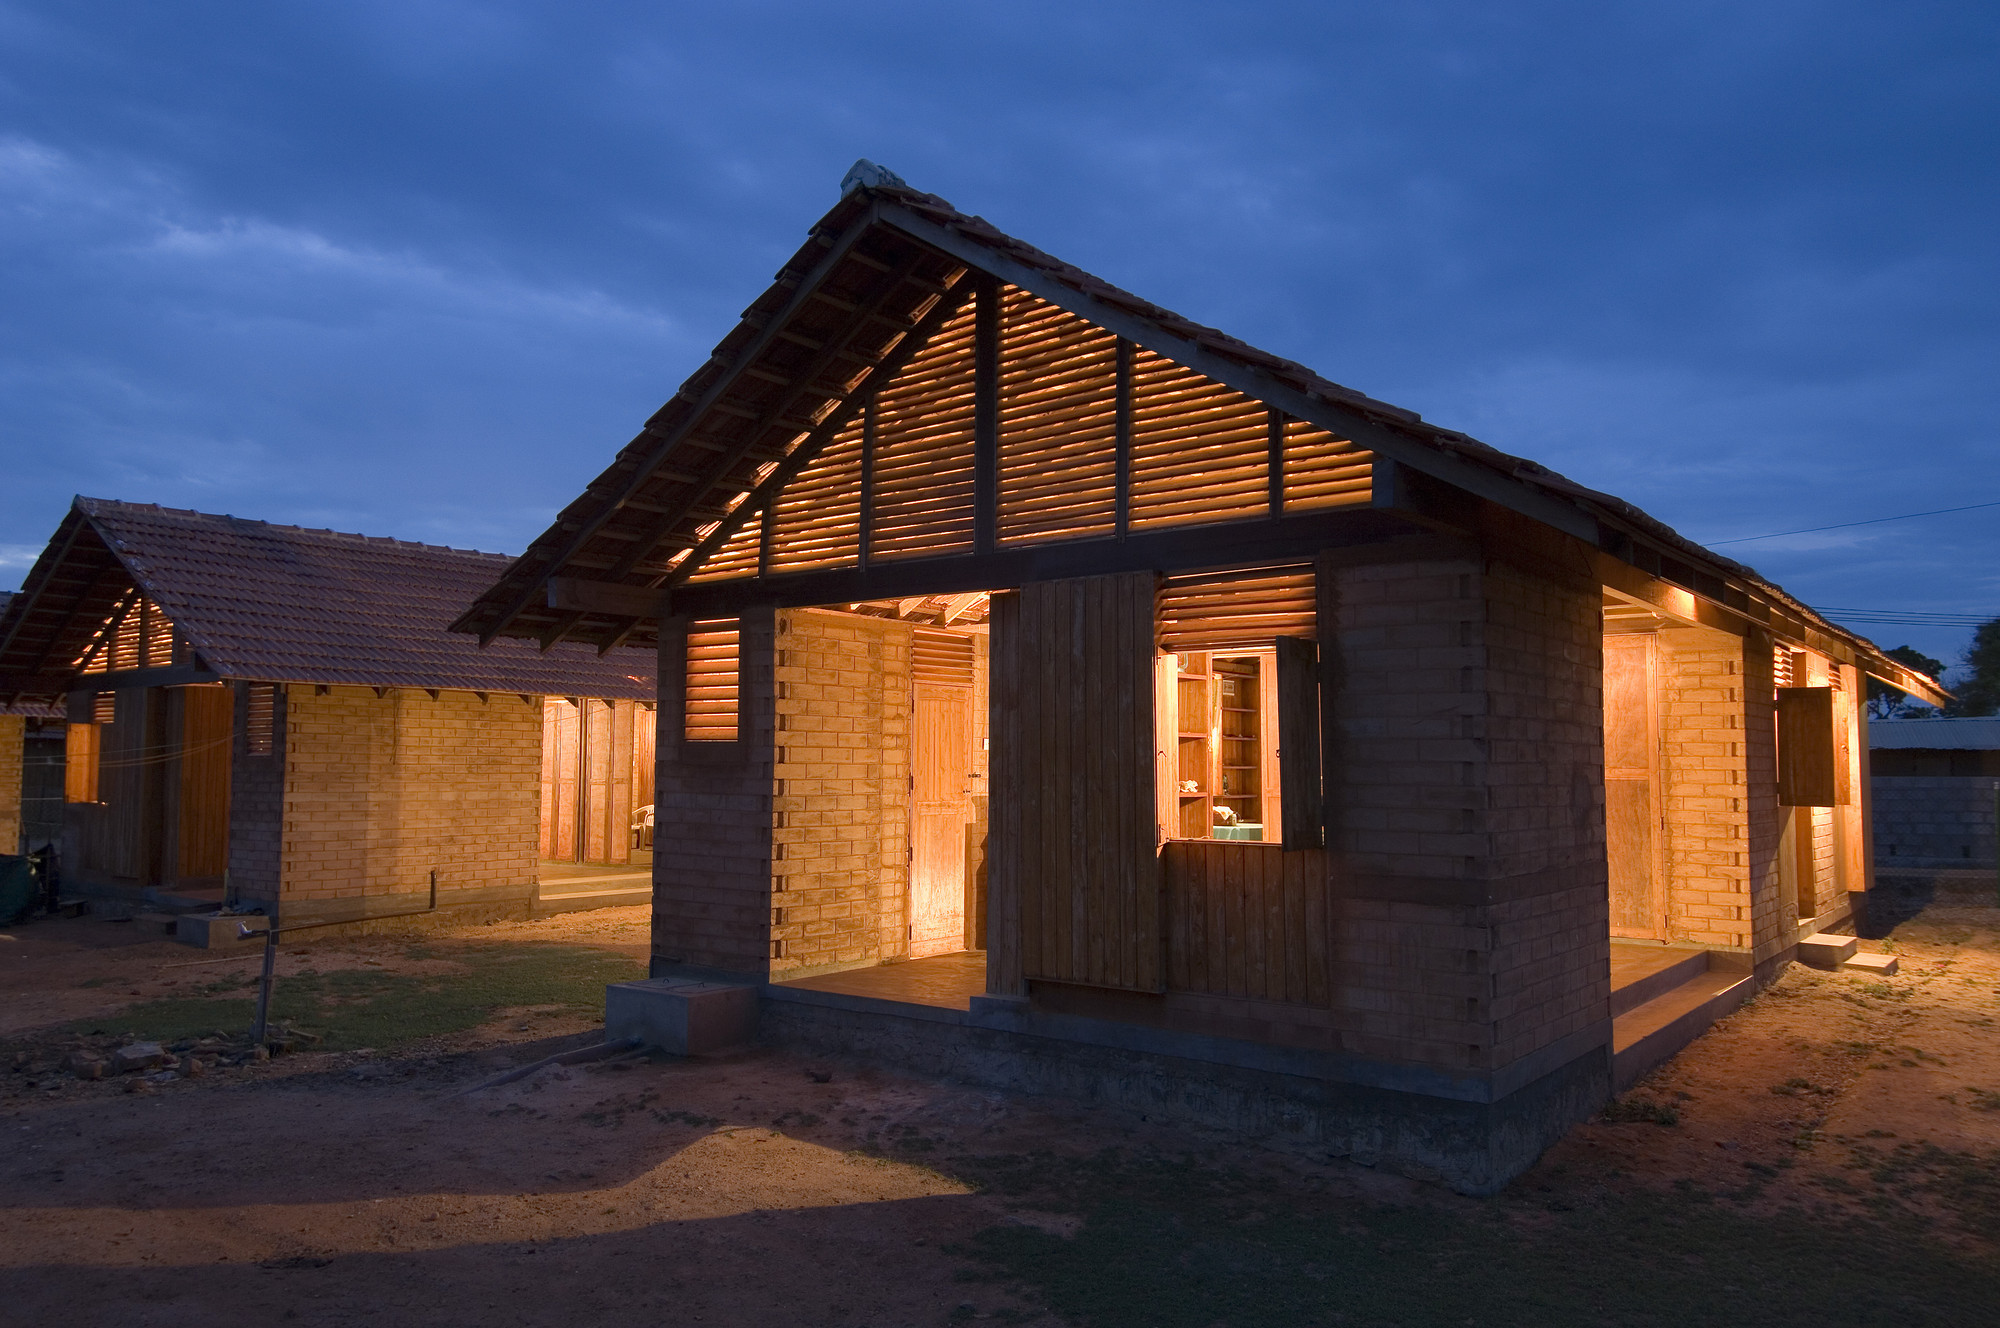 Post-Tsunami Housing / Shigeru Ban Architects, © Dominic Sansoni